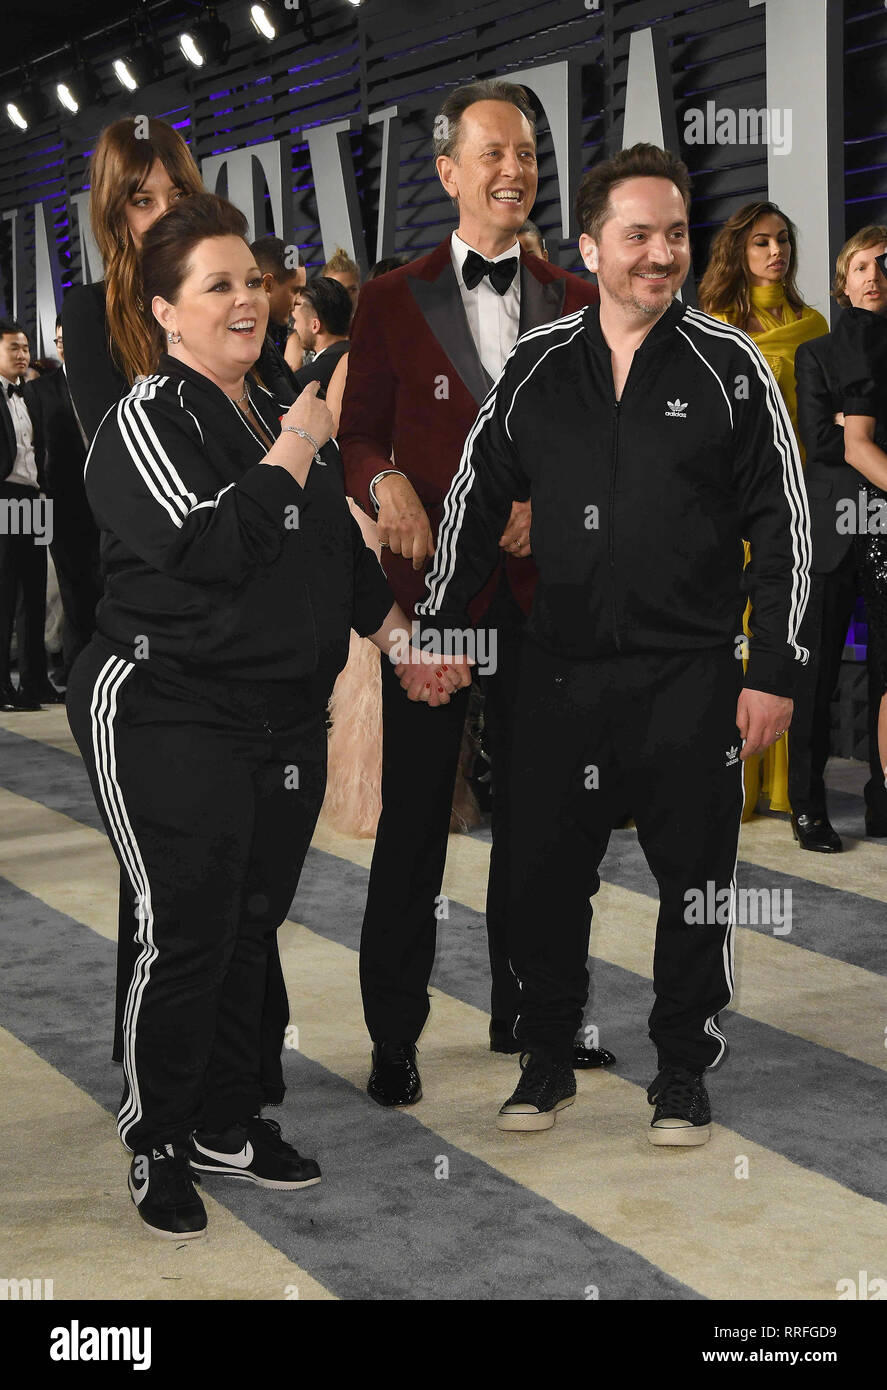 February 24, 2019 - Los Angeles, California, U.S. - 24 February 2019 - Los Angeles, California - Melissa McCarthy, Richard E. Grant, Ben Falcone. 2019 Vanity Fair Oscar Party following the 91st Academy Awards held at the Wallis Annenberg Center for the Performing Arts. Photo Credit: Birdie Thompson/AdMedia (Credit Image: © Birdie Thompson/AdMedia via ZUMA Wire) - Stock Image